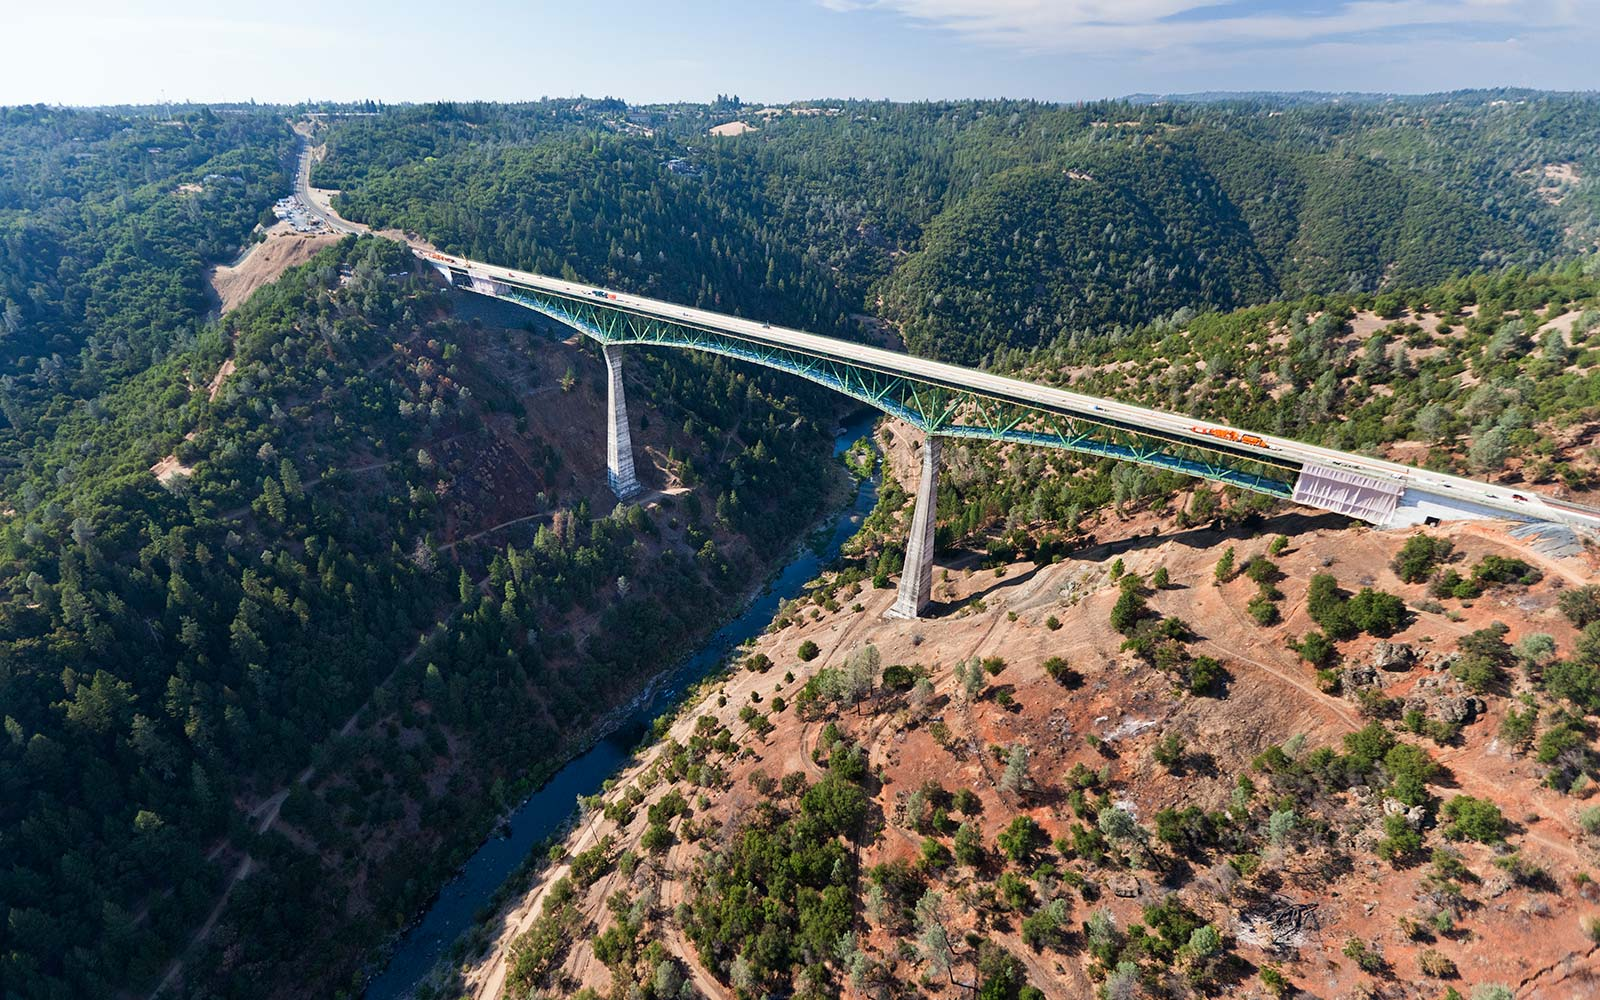 Woman Falls Off California's Tallest Bridge While Attempting to Take a Selfie